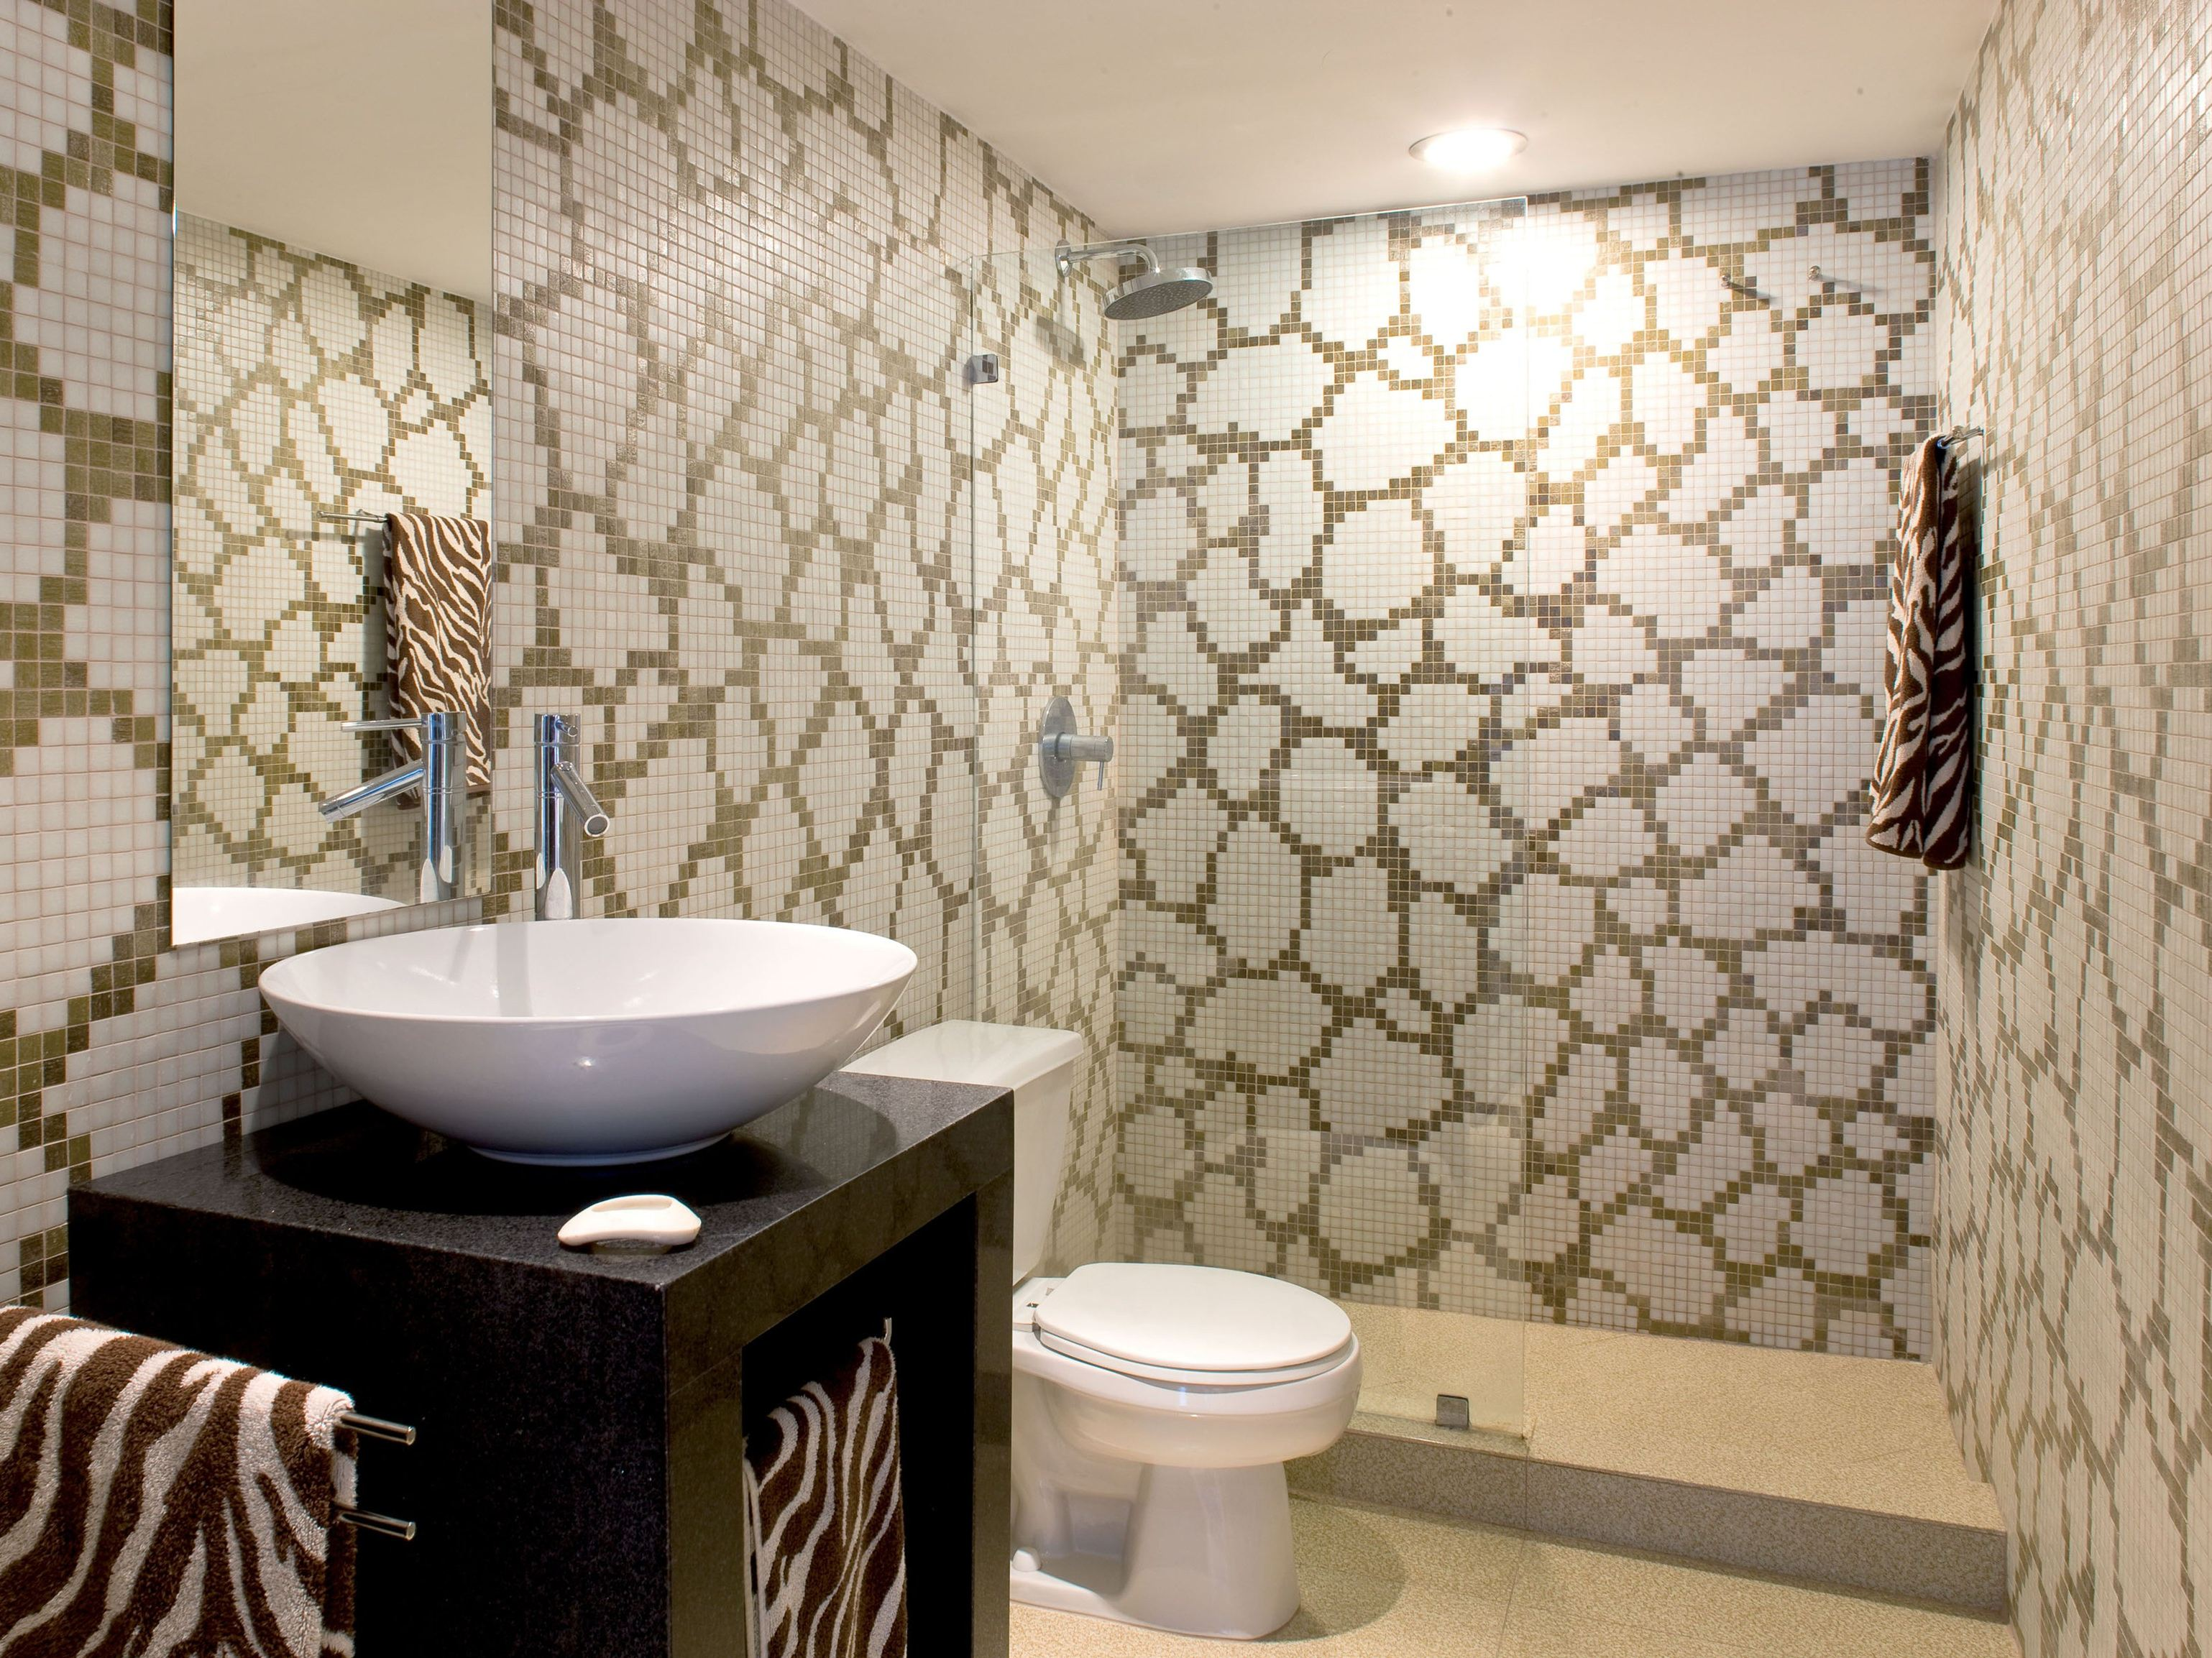 Mosaico de vidrio feel by trend group for Badezimmer muster